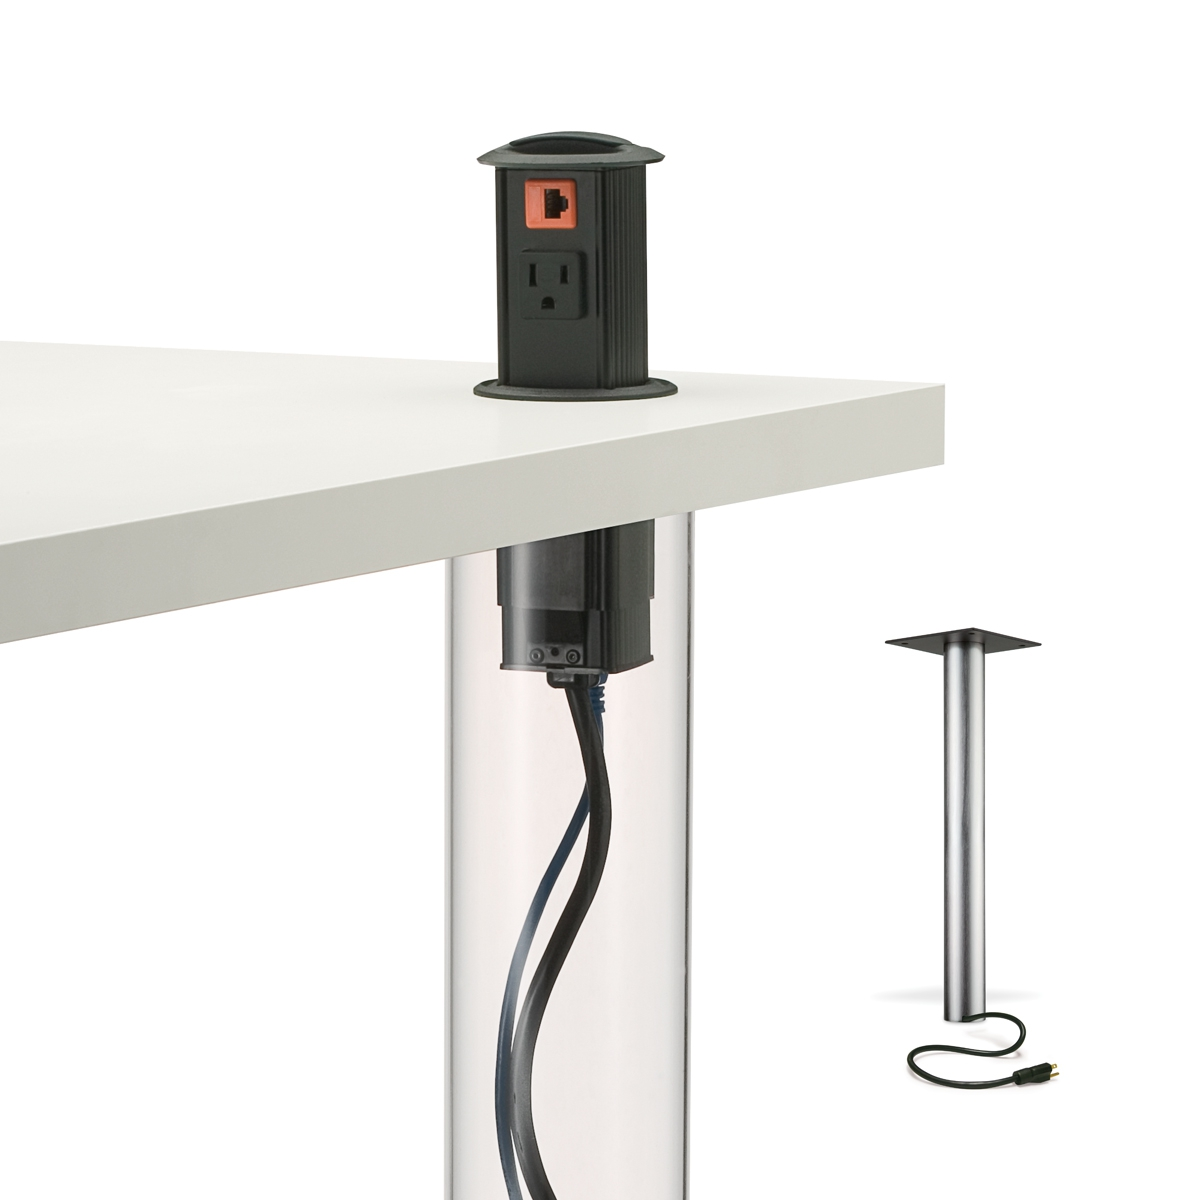 Table Legs with Power Integration